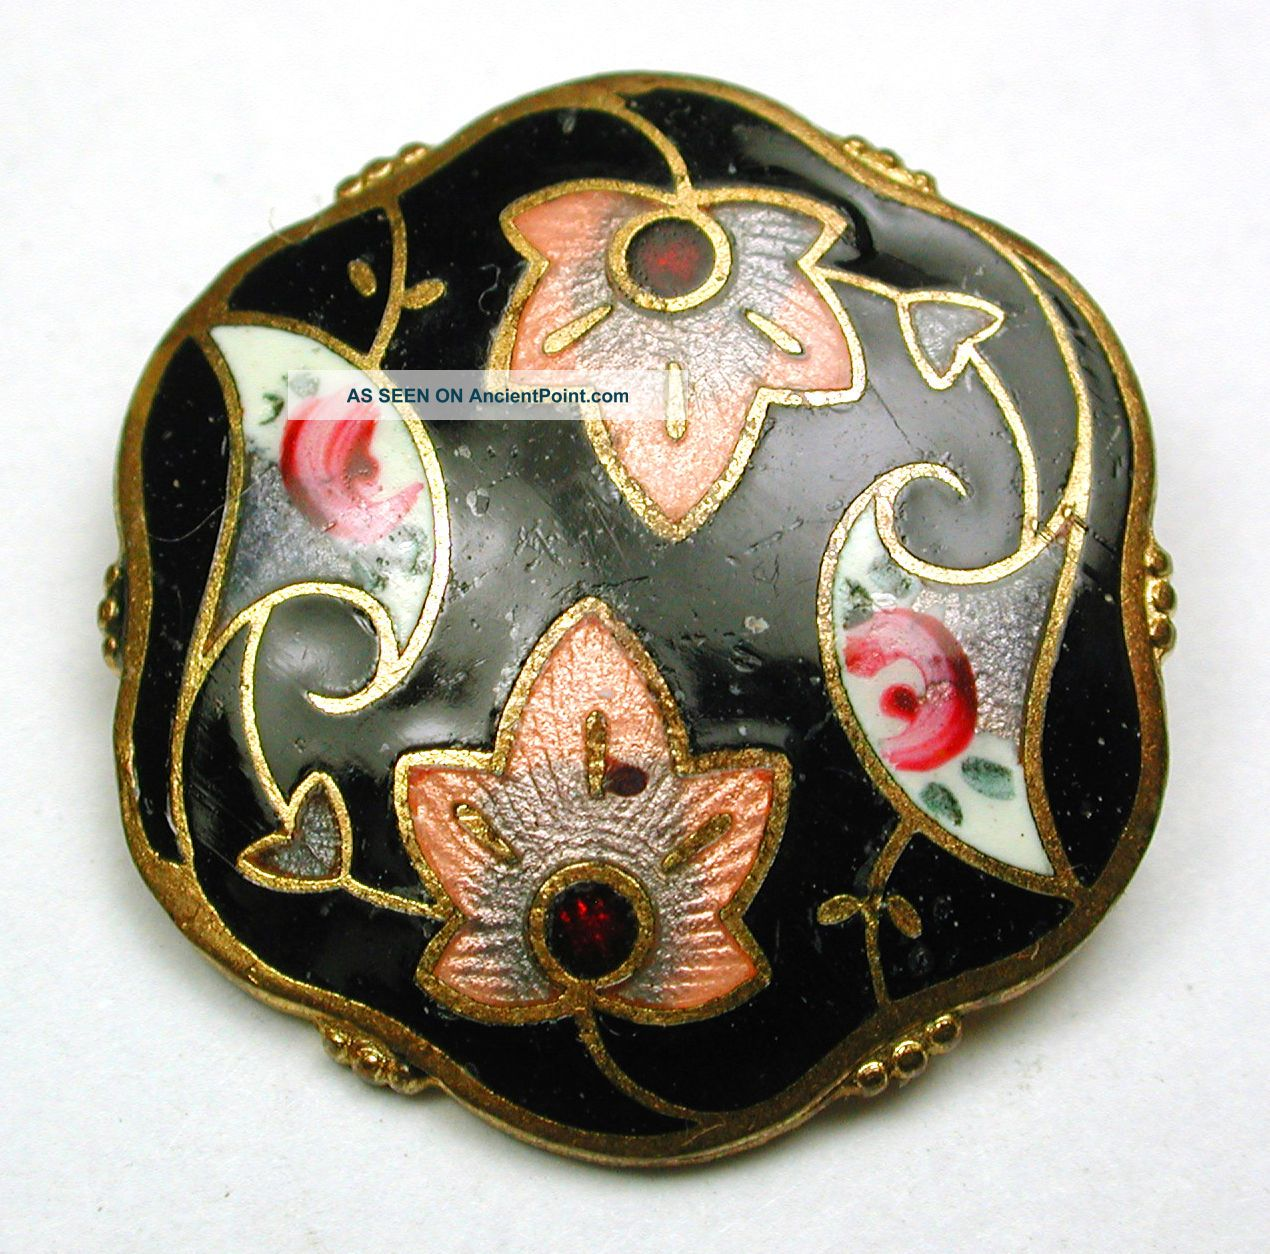 Antique Enamel Button Hand Painted & Basse Taille Flower Design 15/16